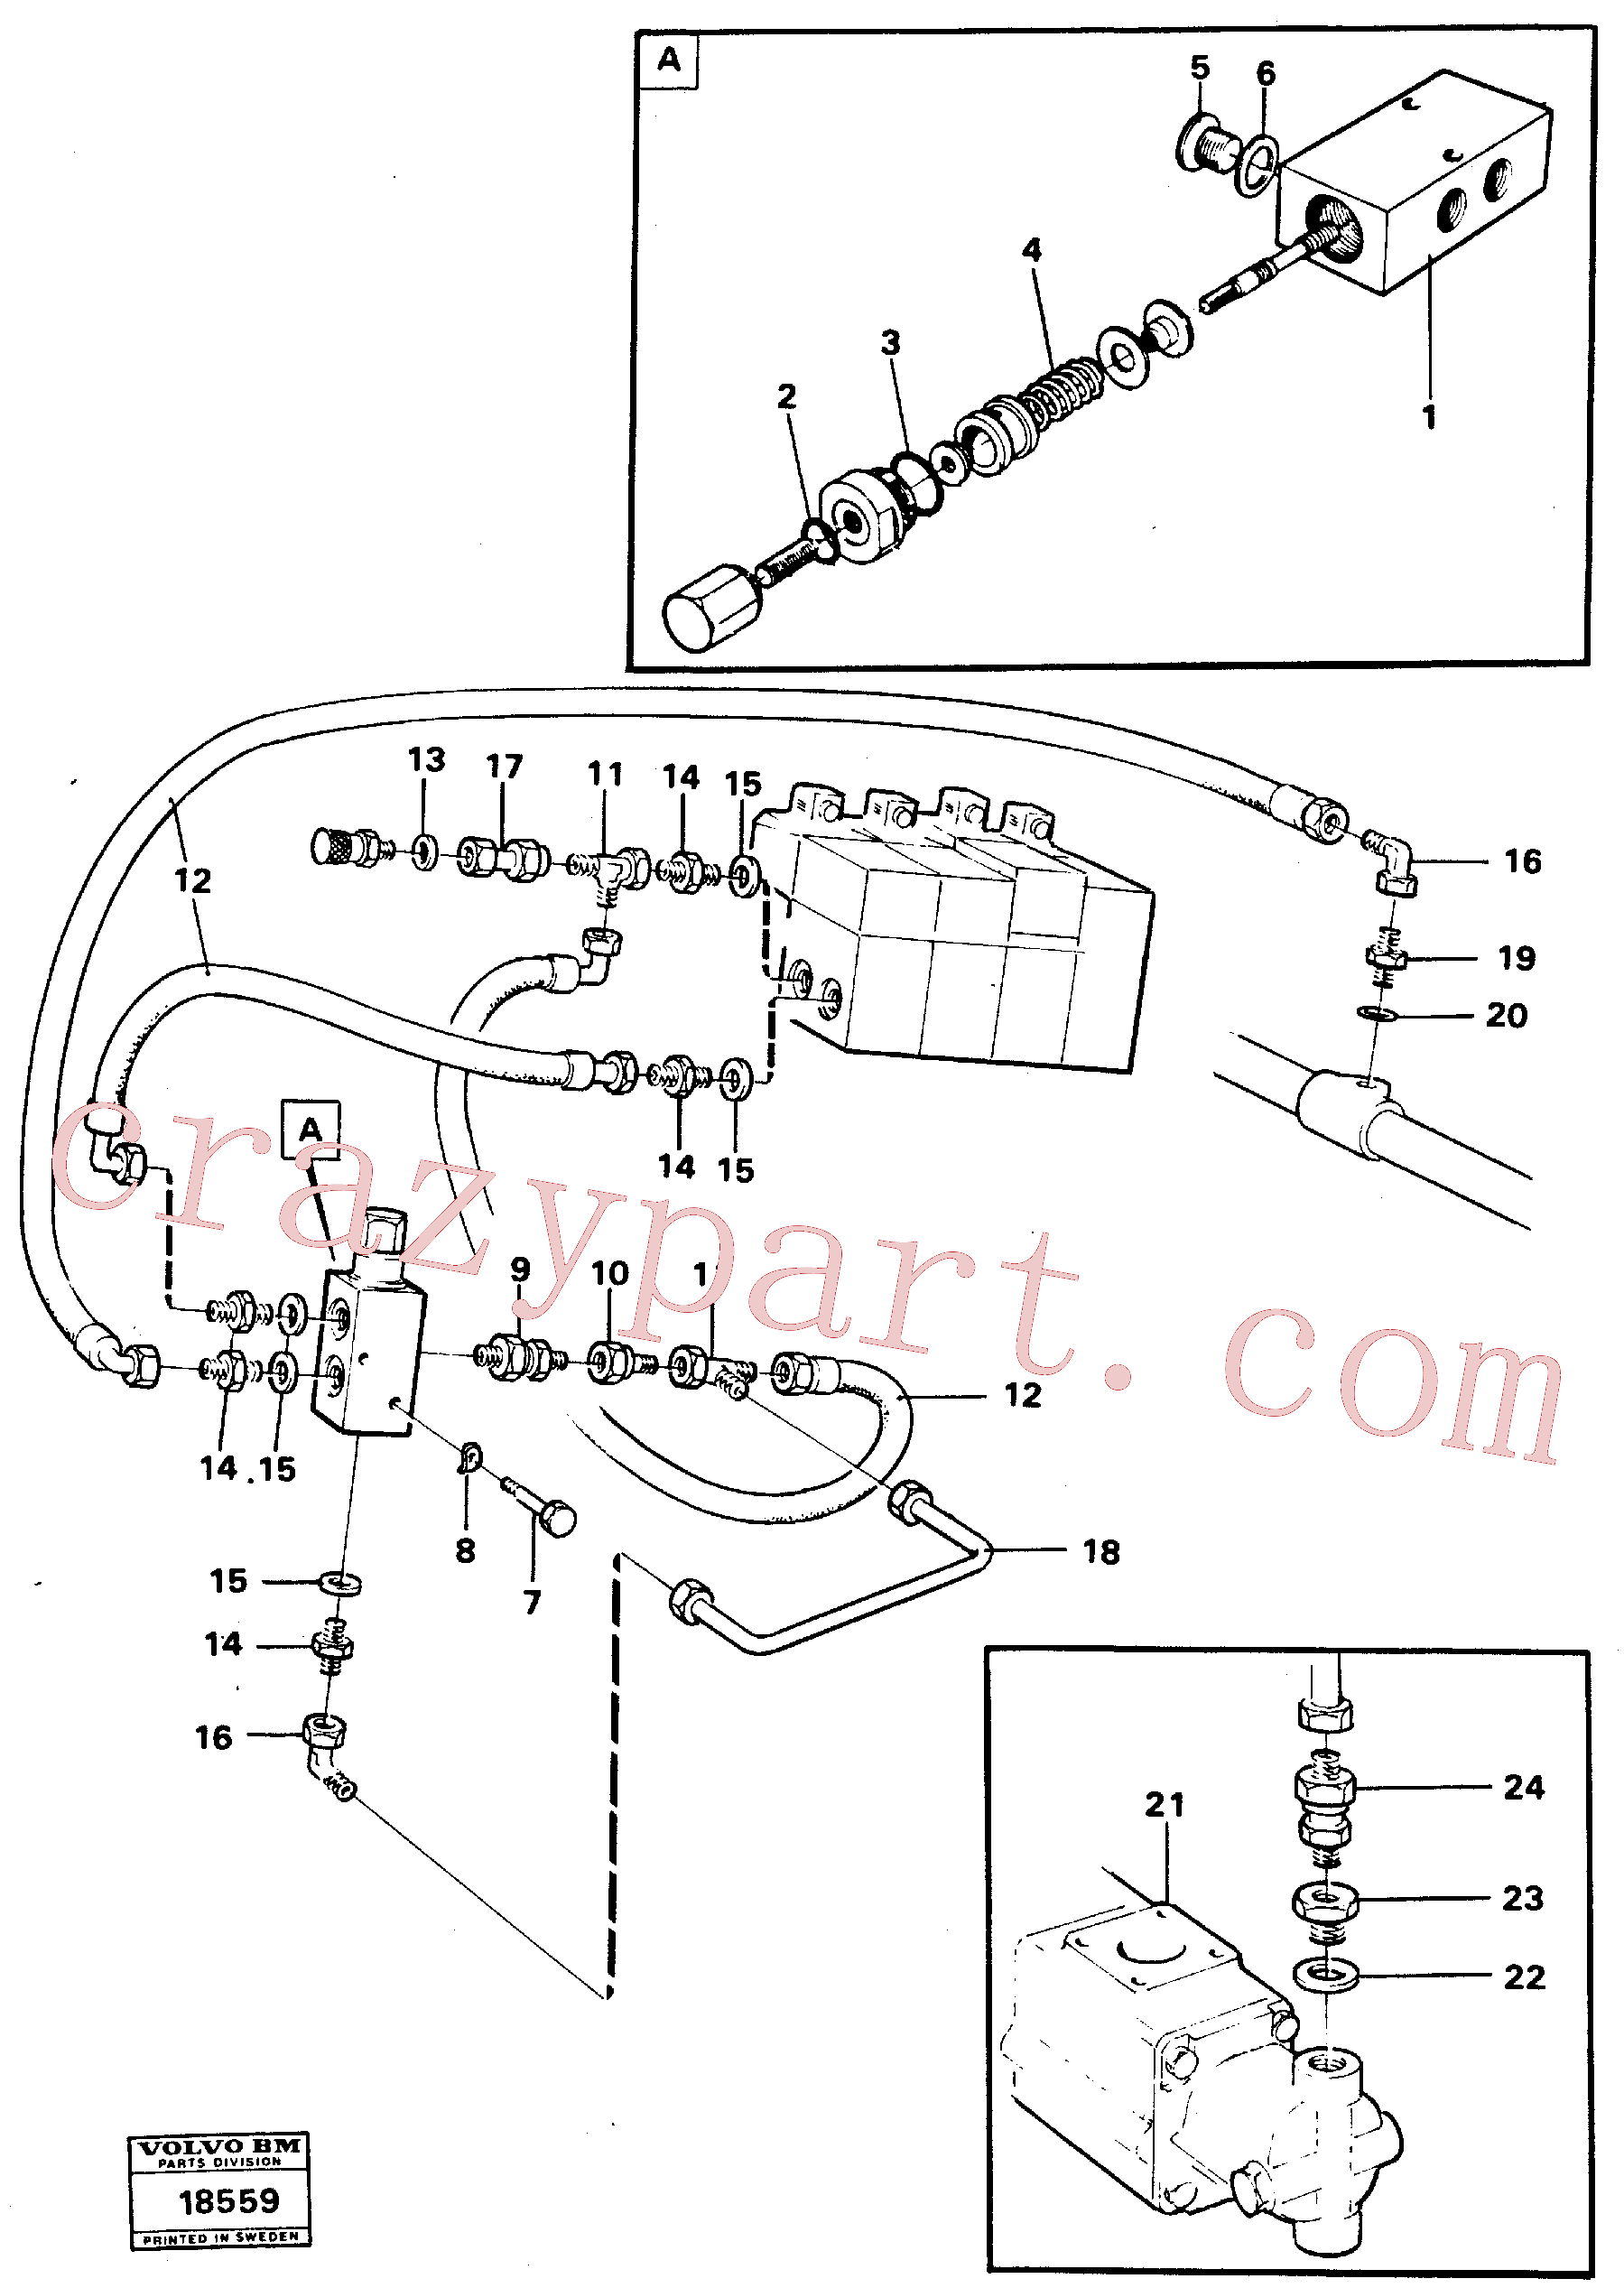 VOE940101 for Volvo Boom lowering system, Boom lowering system.(18559 assembly)